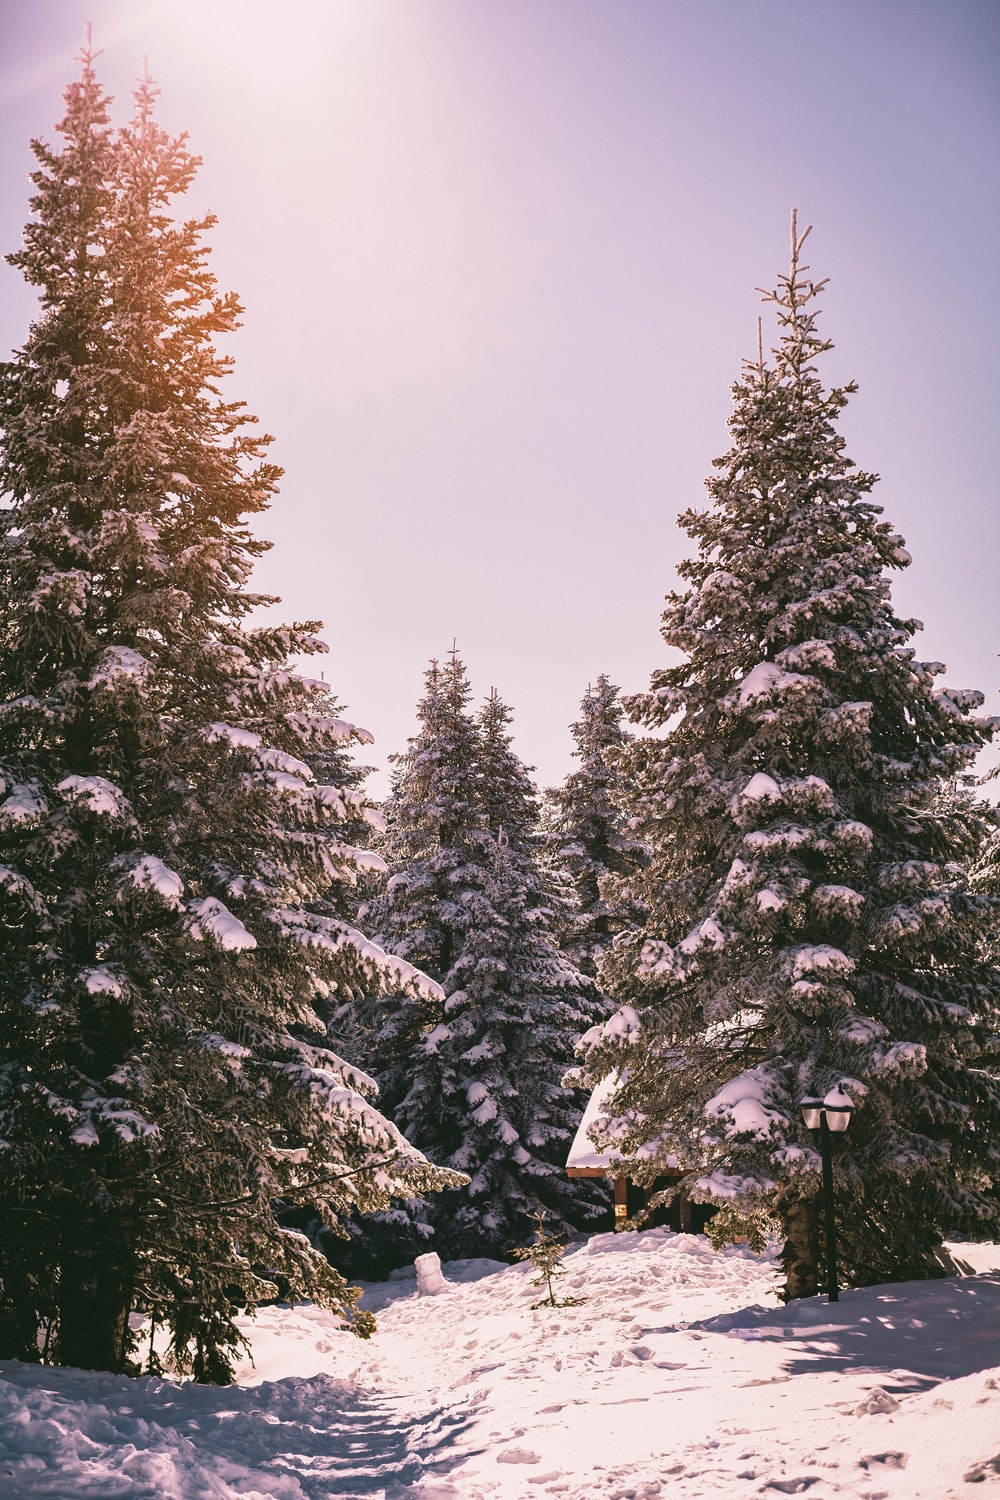 snow covered pine trees under white cloudy sky during daytime